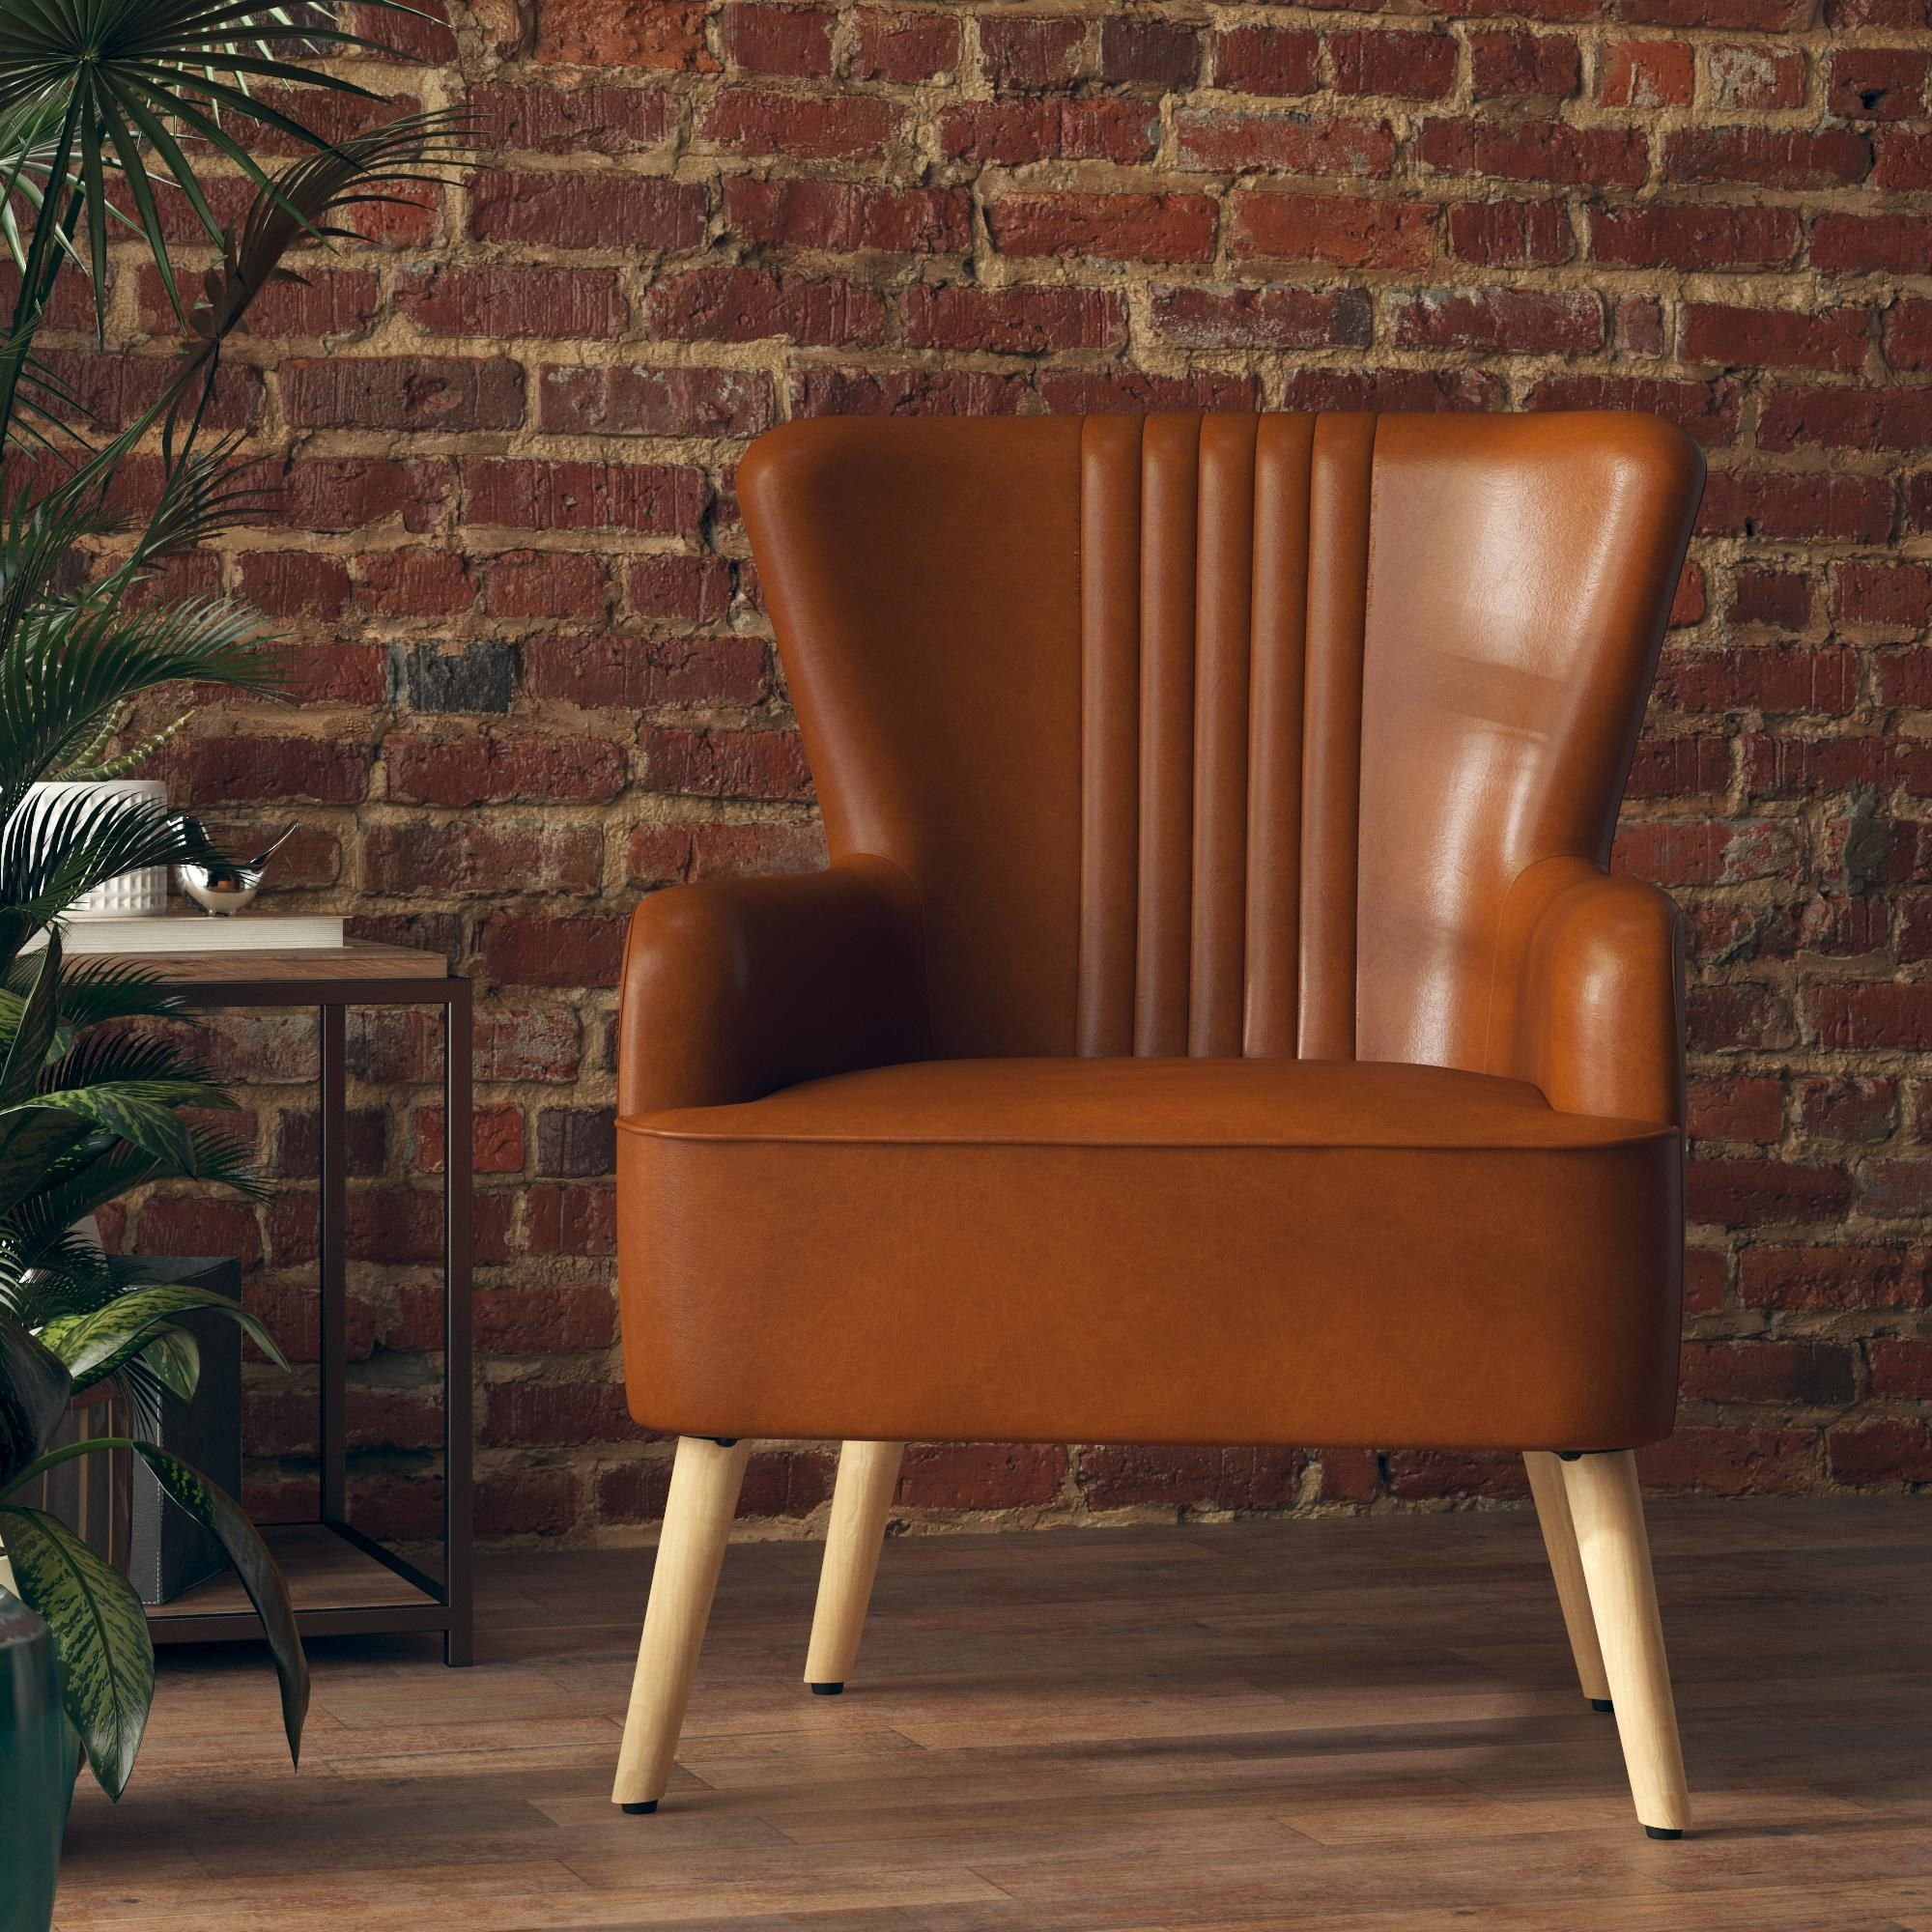 The caramel faux-leather chair which has four wooden legs and a high back